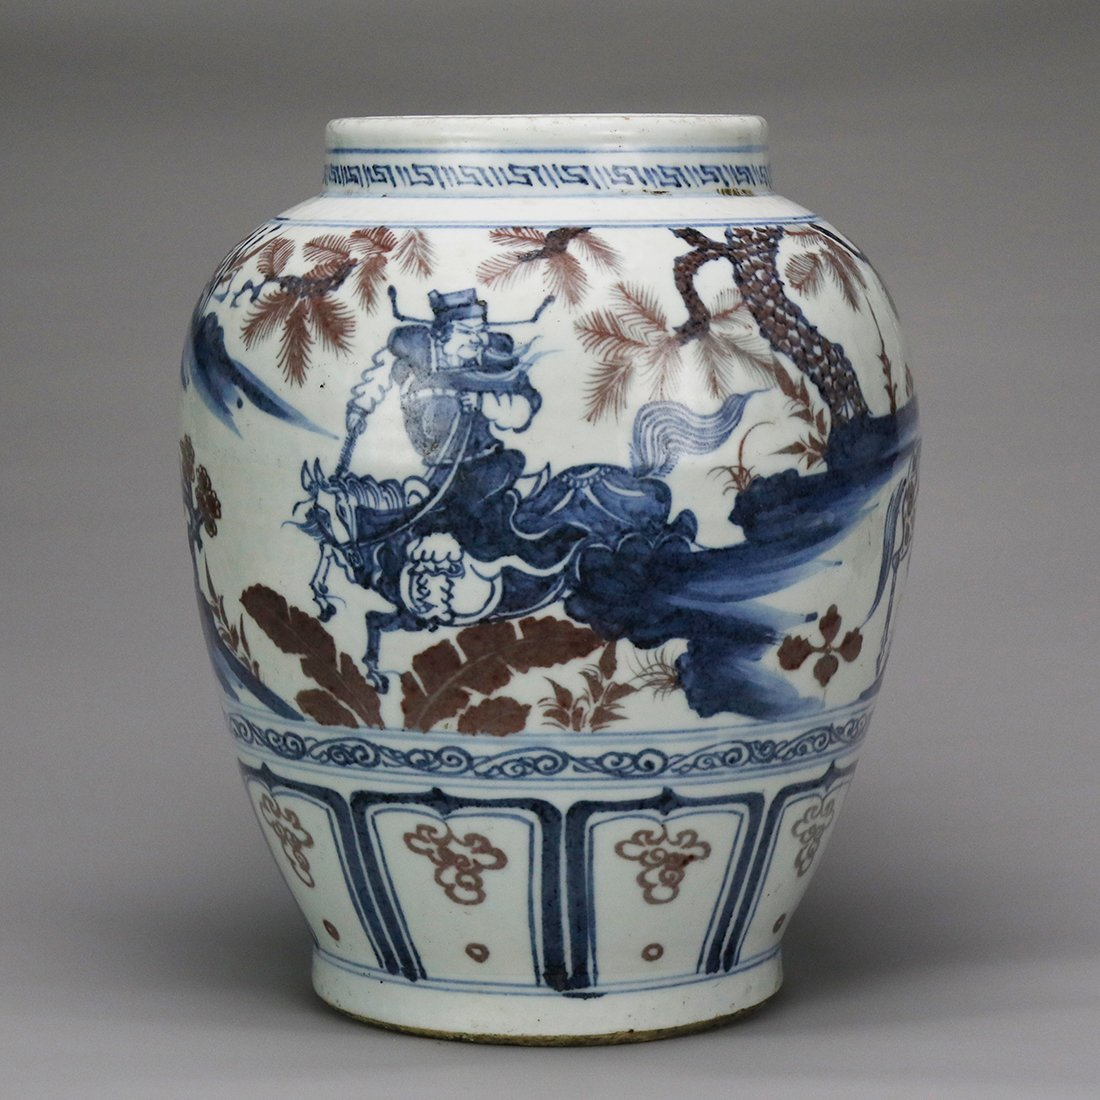 China 15 Century blue and white glazed red ceramic pot - 2